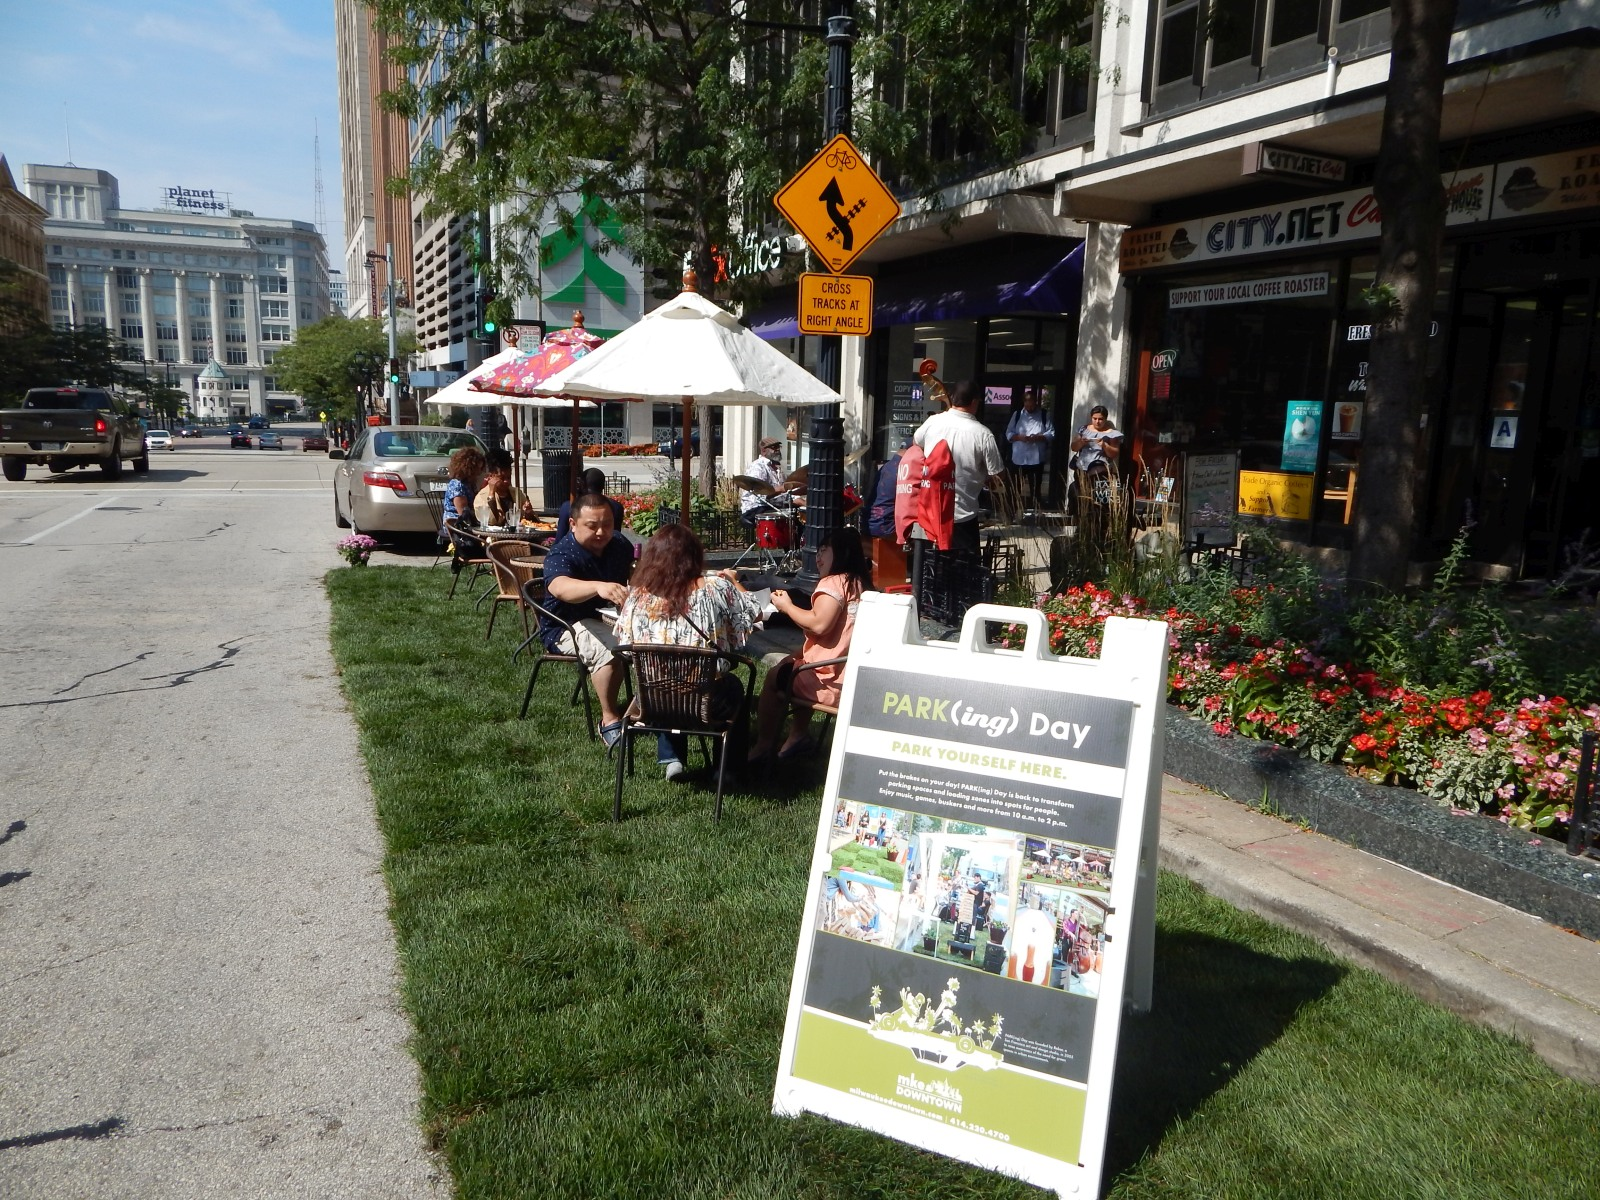 PARK(ing) Day at City.Net Cafe. Photo by Gabriel Yeager.